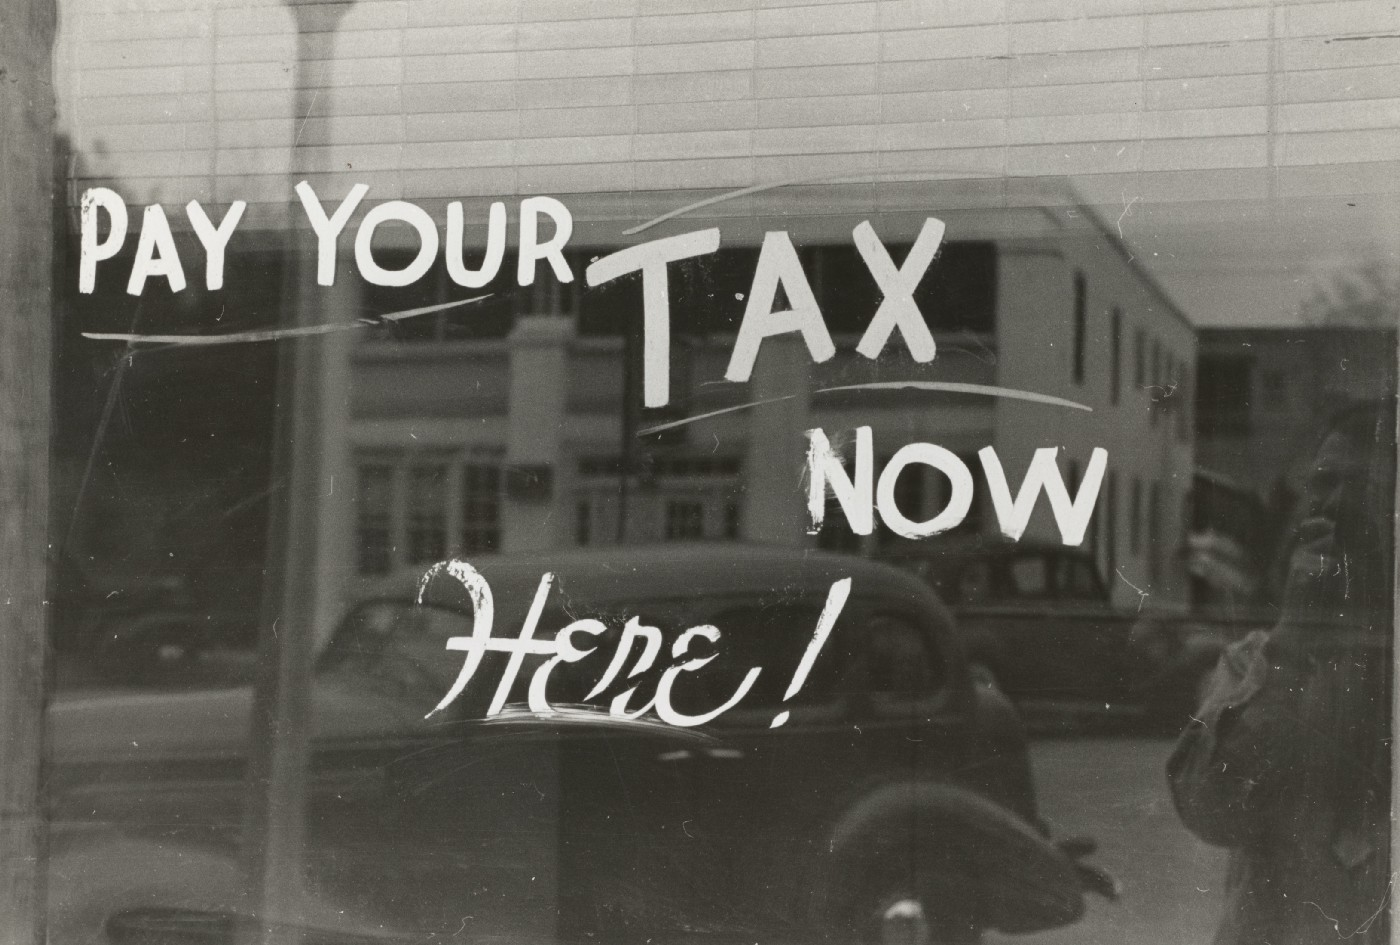 Words: Pay your tax now here written on a window